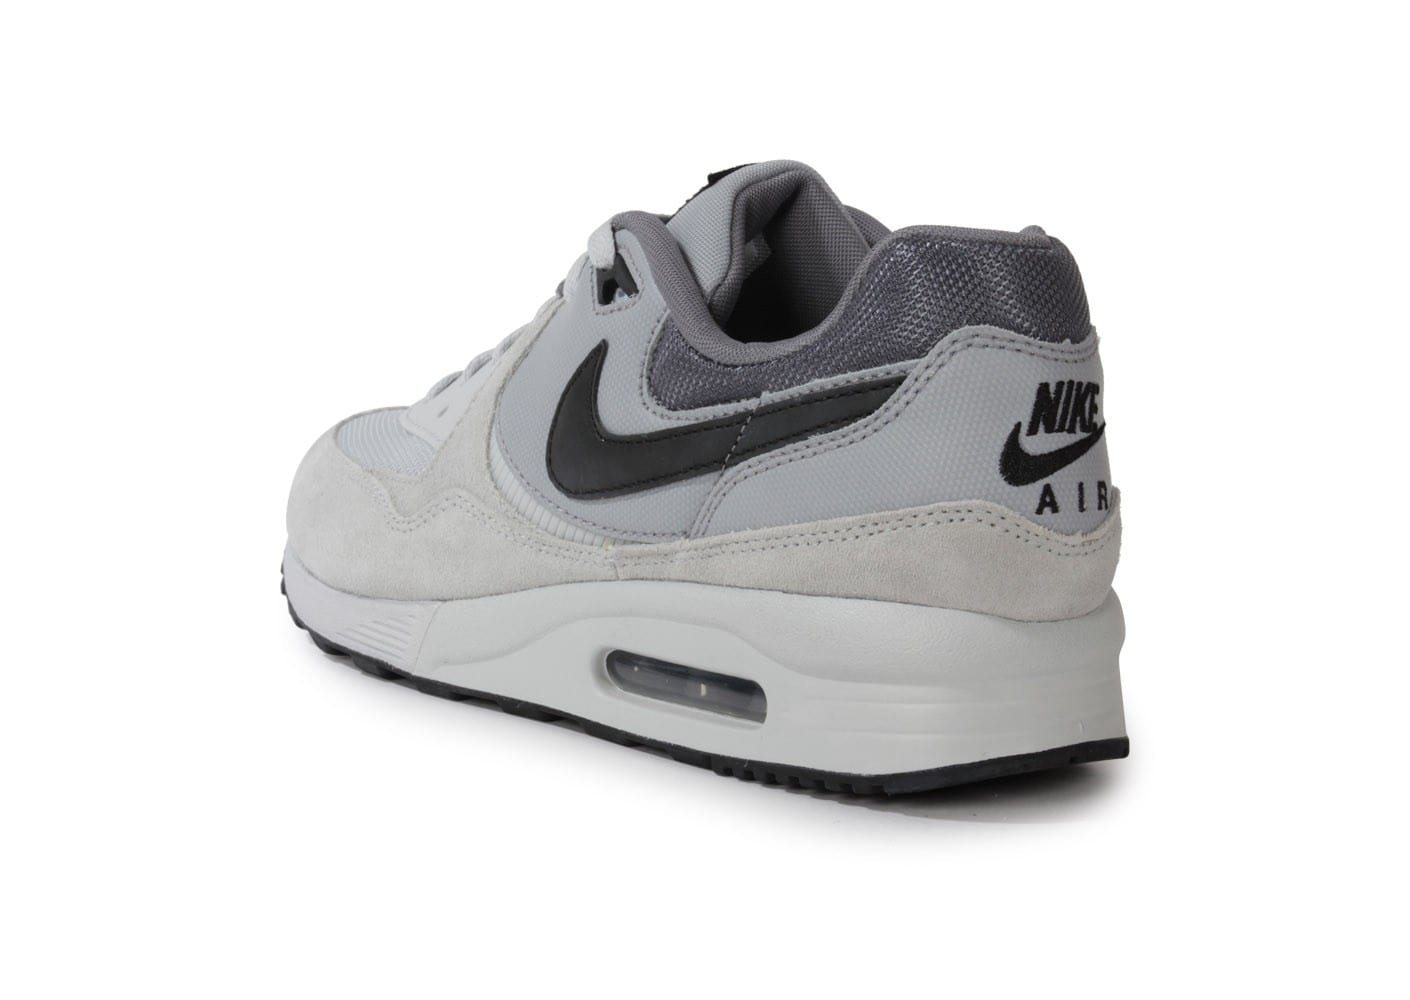 nike air max light pure platinium chaussures baskets homme chausport. Black Bedroom Furniture Sets. Home Design Ideas